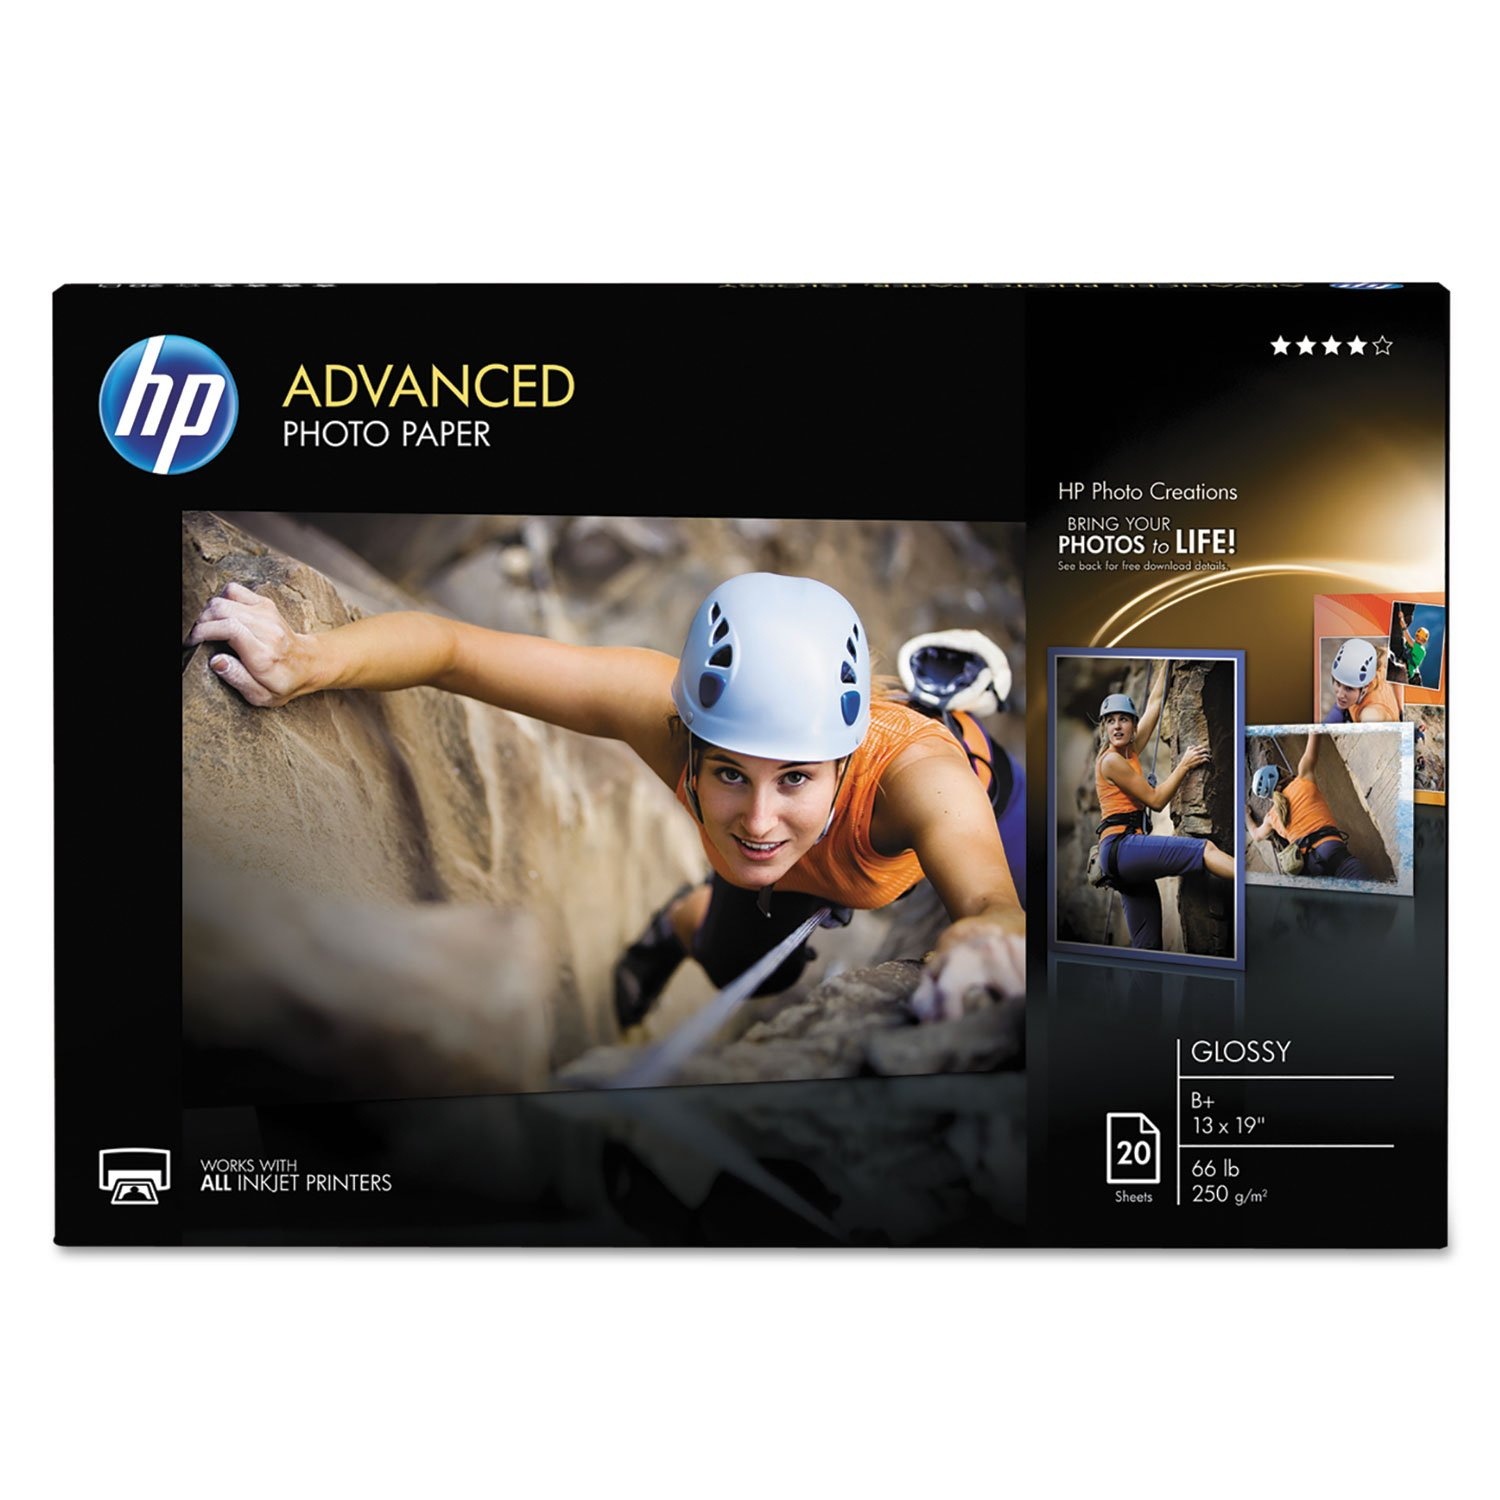 HP CR696A Advanced Photo Paper, 66 lbs, Glossy, 13 x 19, 20 Sheets/Pack